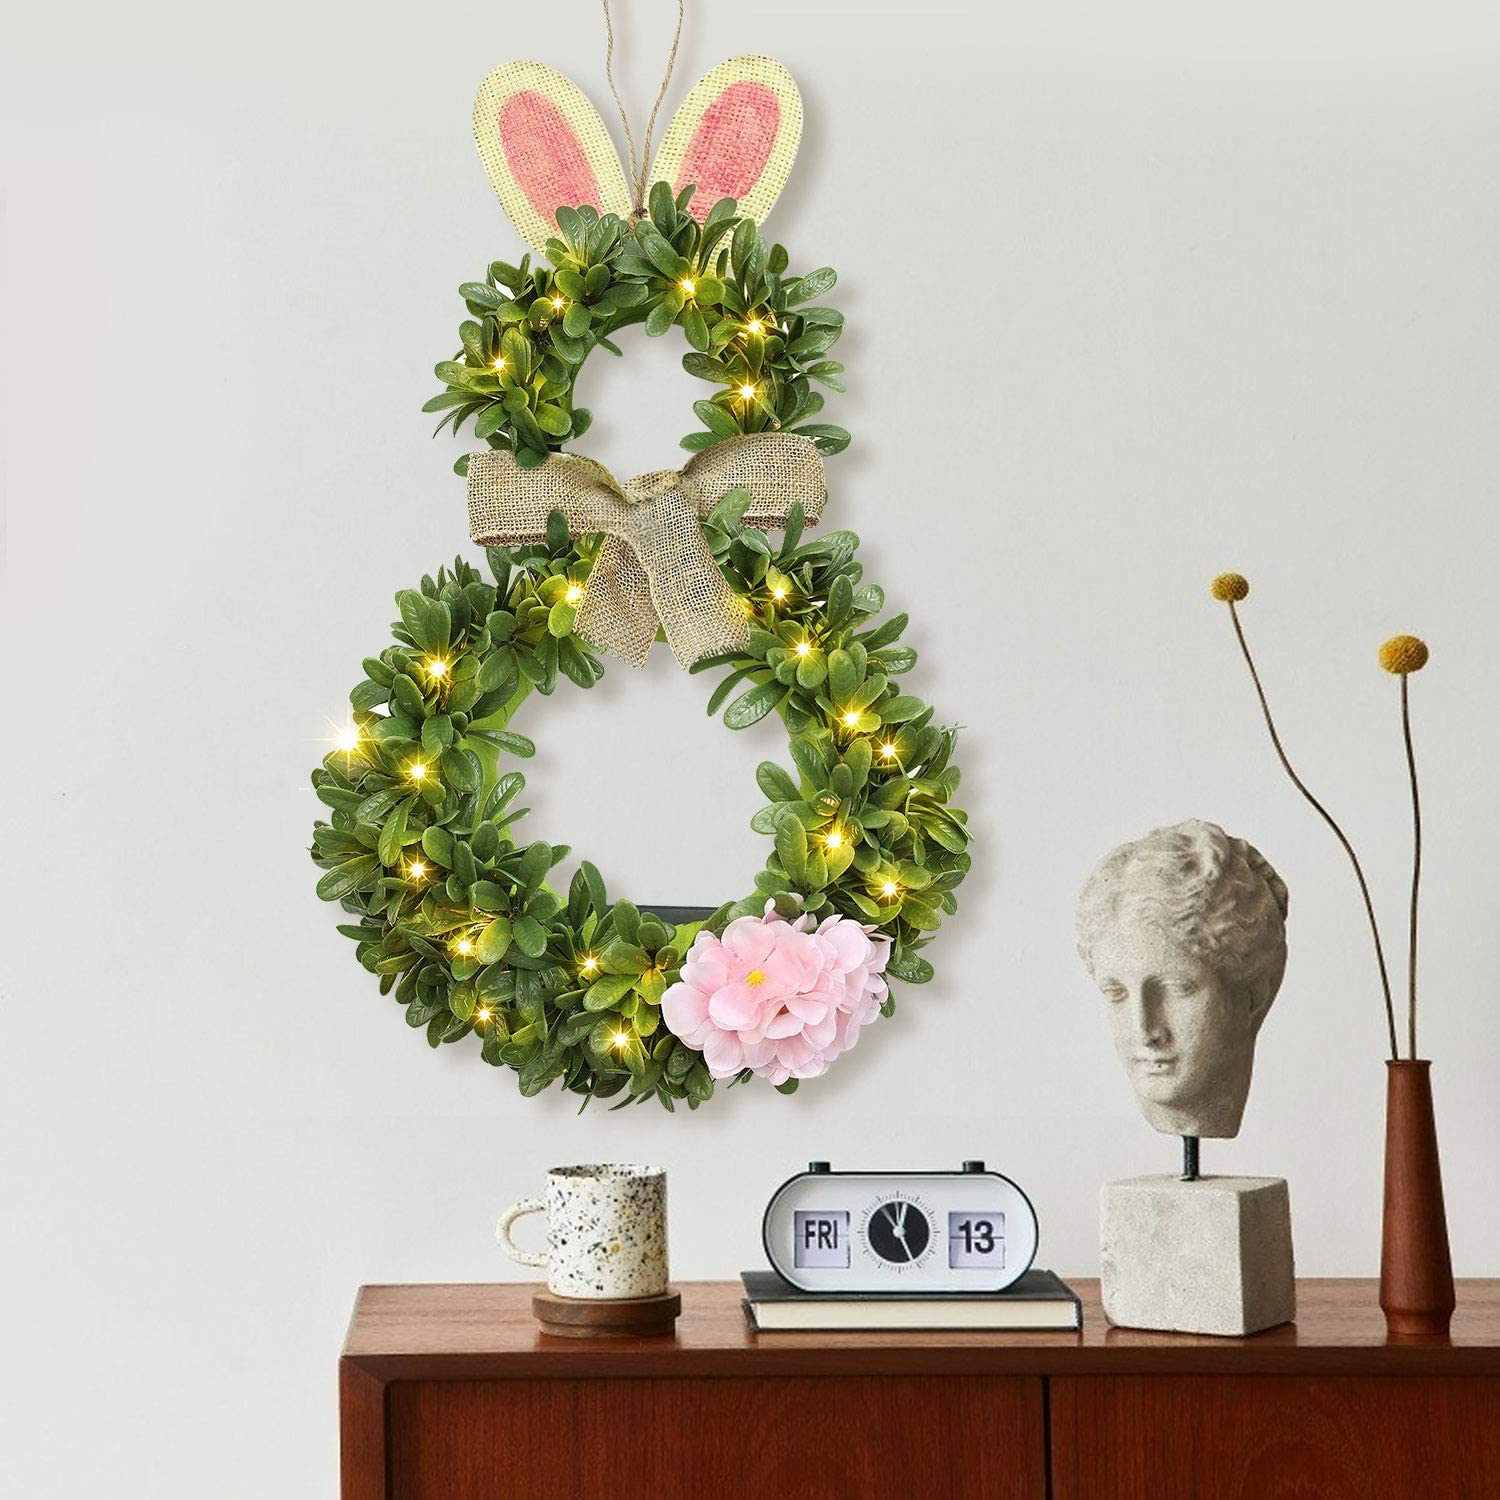 Remon Pre-lit Easter Wreath Bunny with Timer 11x20 Inch Hanging Easter Wreath for Front Door Lighted Wreath with 20 LED Lights Mixed Decorations with Fake Flowers Battery Operated